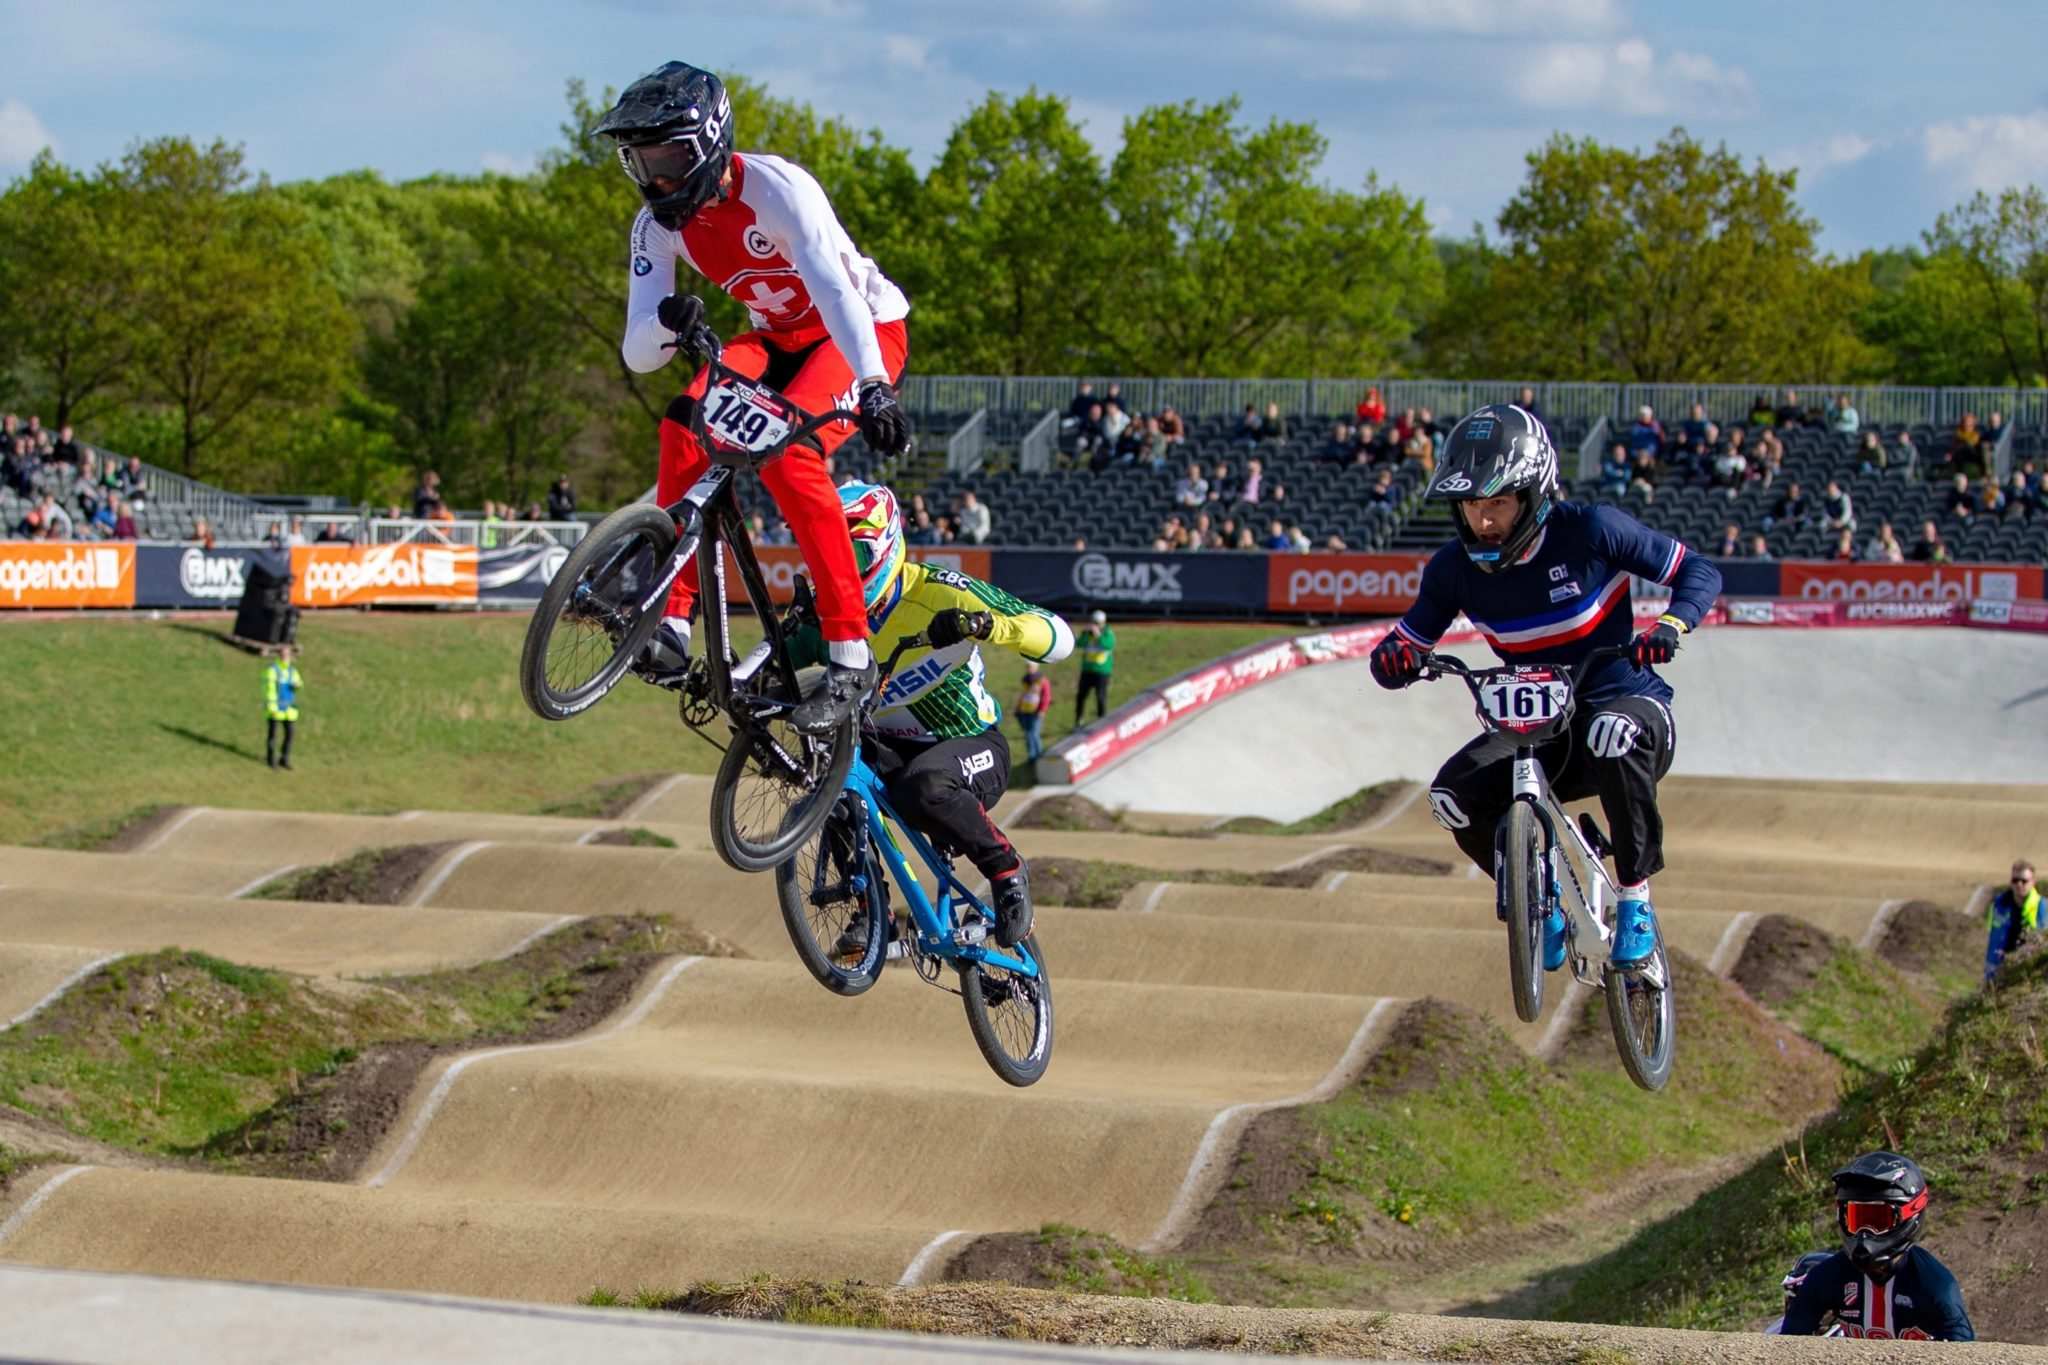 2019 UCI SX BMX Rounds 3&4 Papendal, the Netherlands